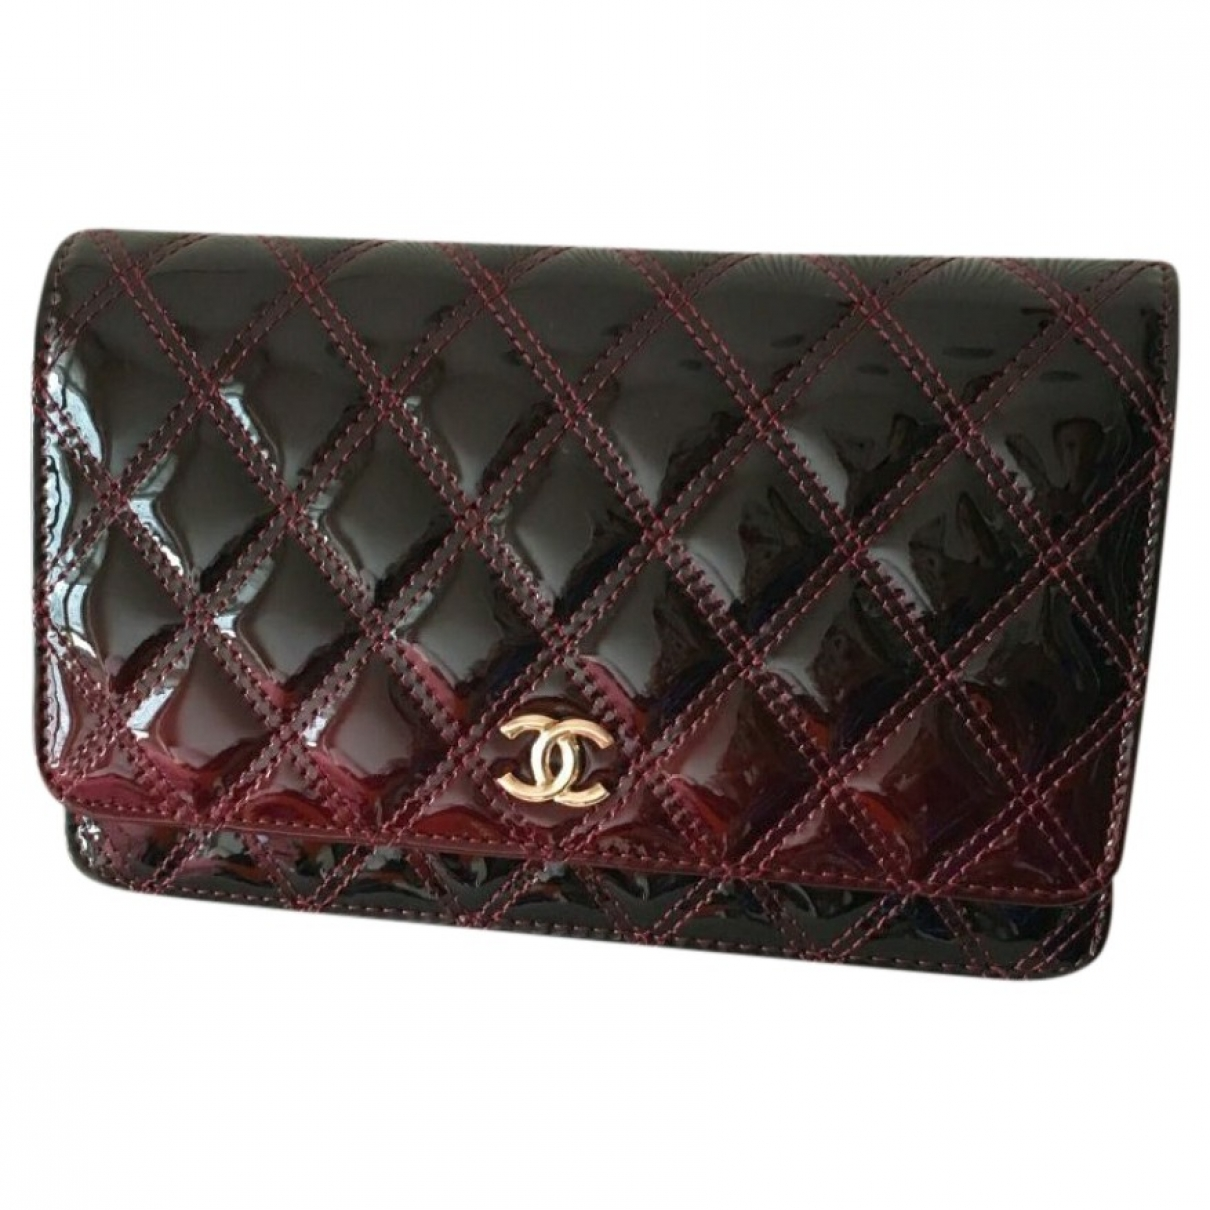 Chanel Wallet on Chain Red Patent leather handbag for Women \N